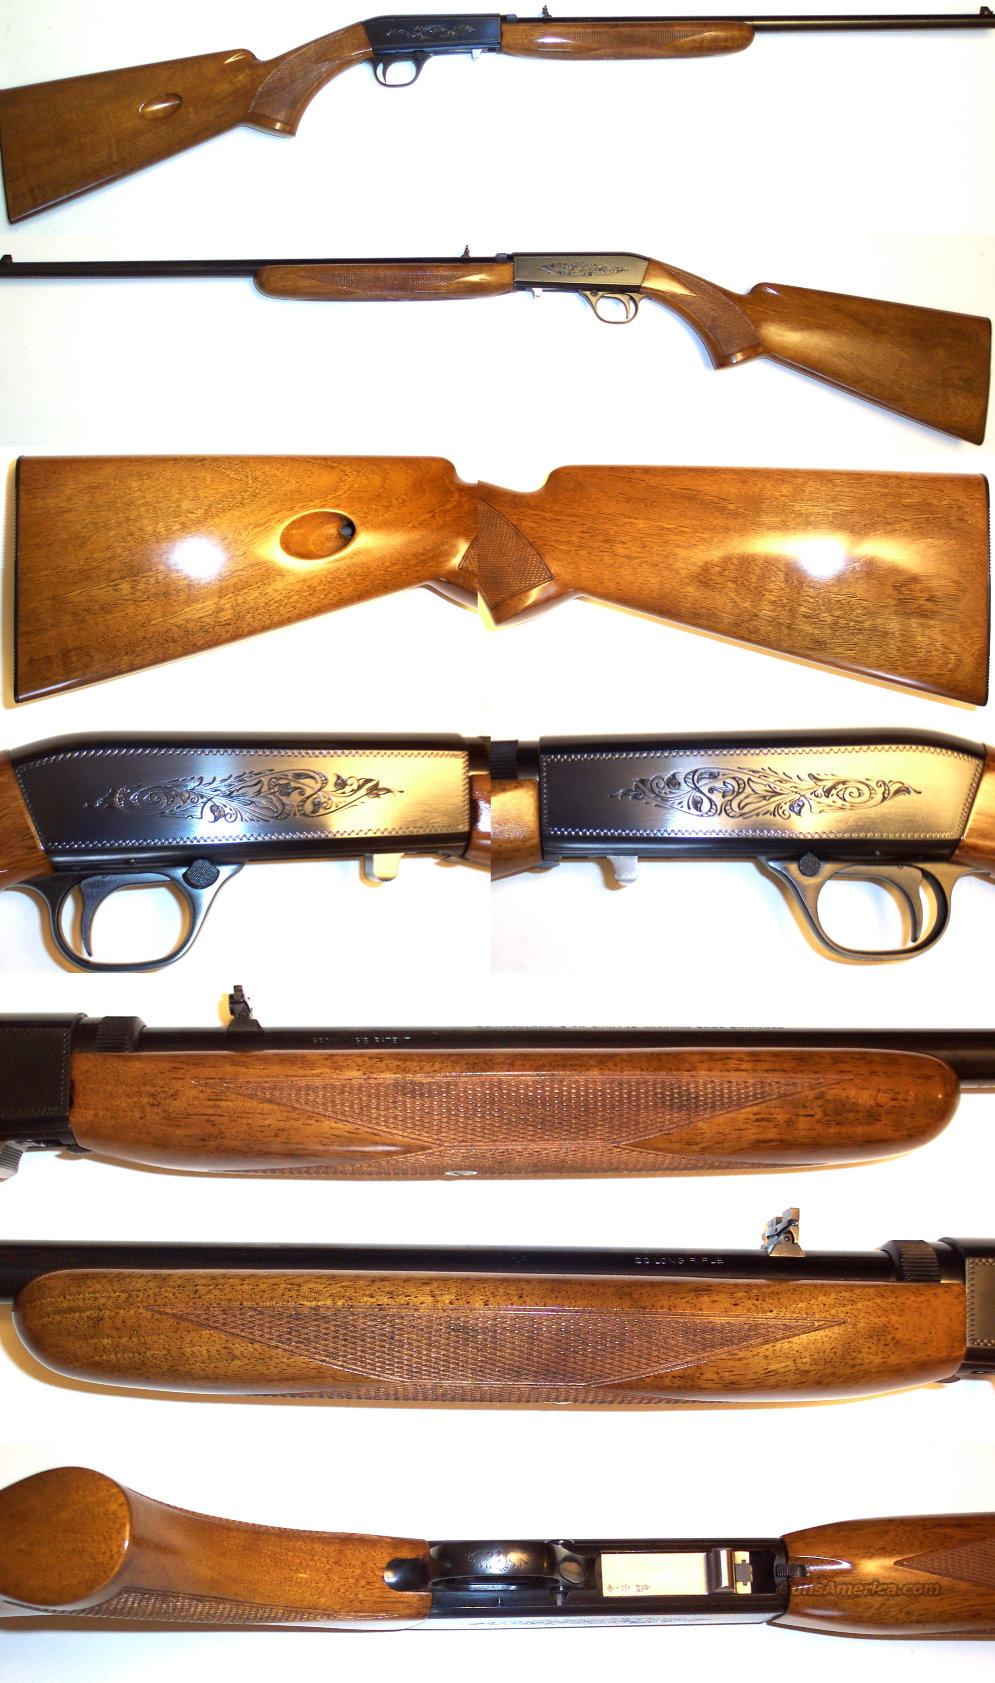 '67 Belgium Browning 22 auto unfired and honey blond!  Guns > Rifles > Browning Rifles > Semi Auto > Hunting